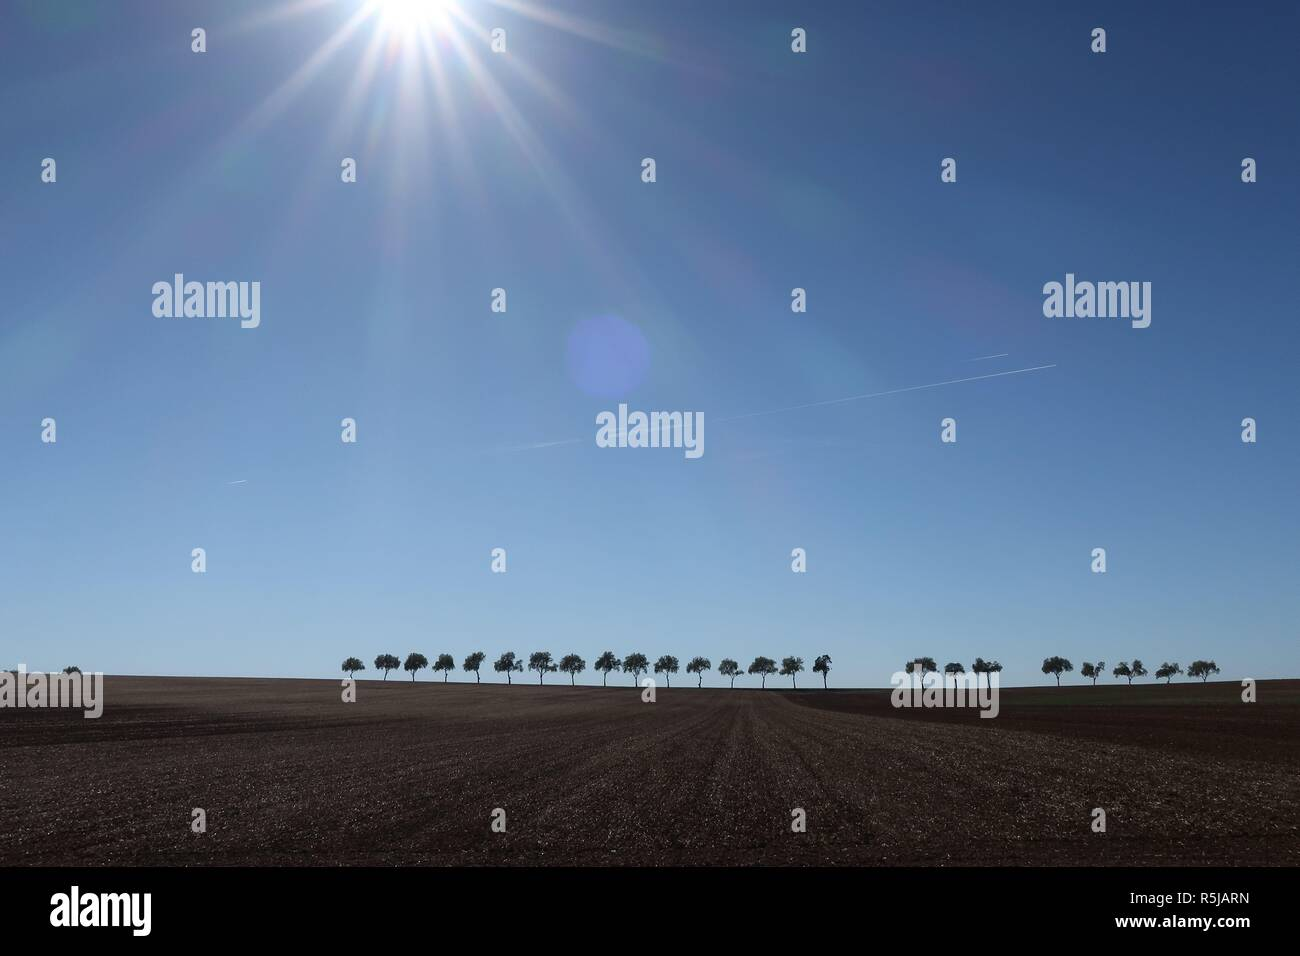 Row of trees in desolate landscape under the bright Champagne sun in France - Stock Image